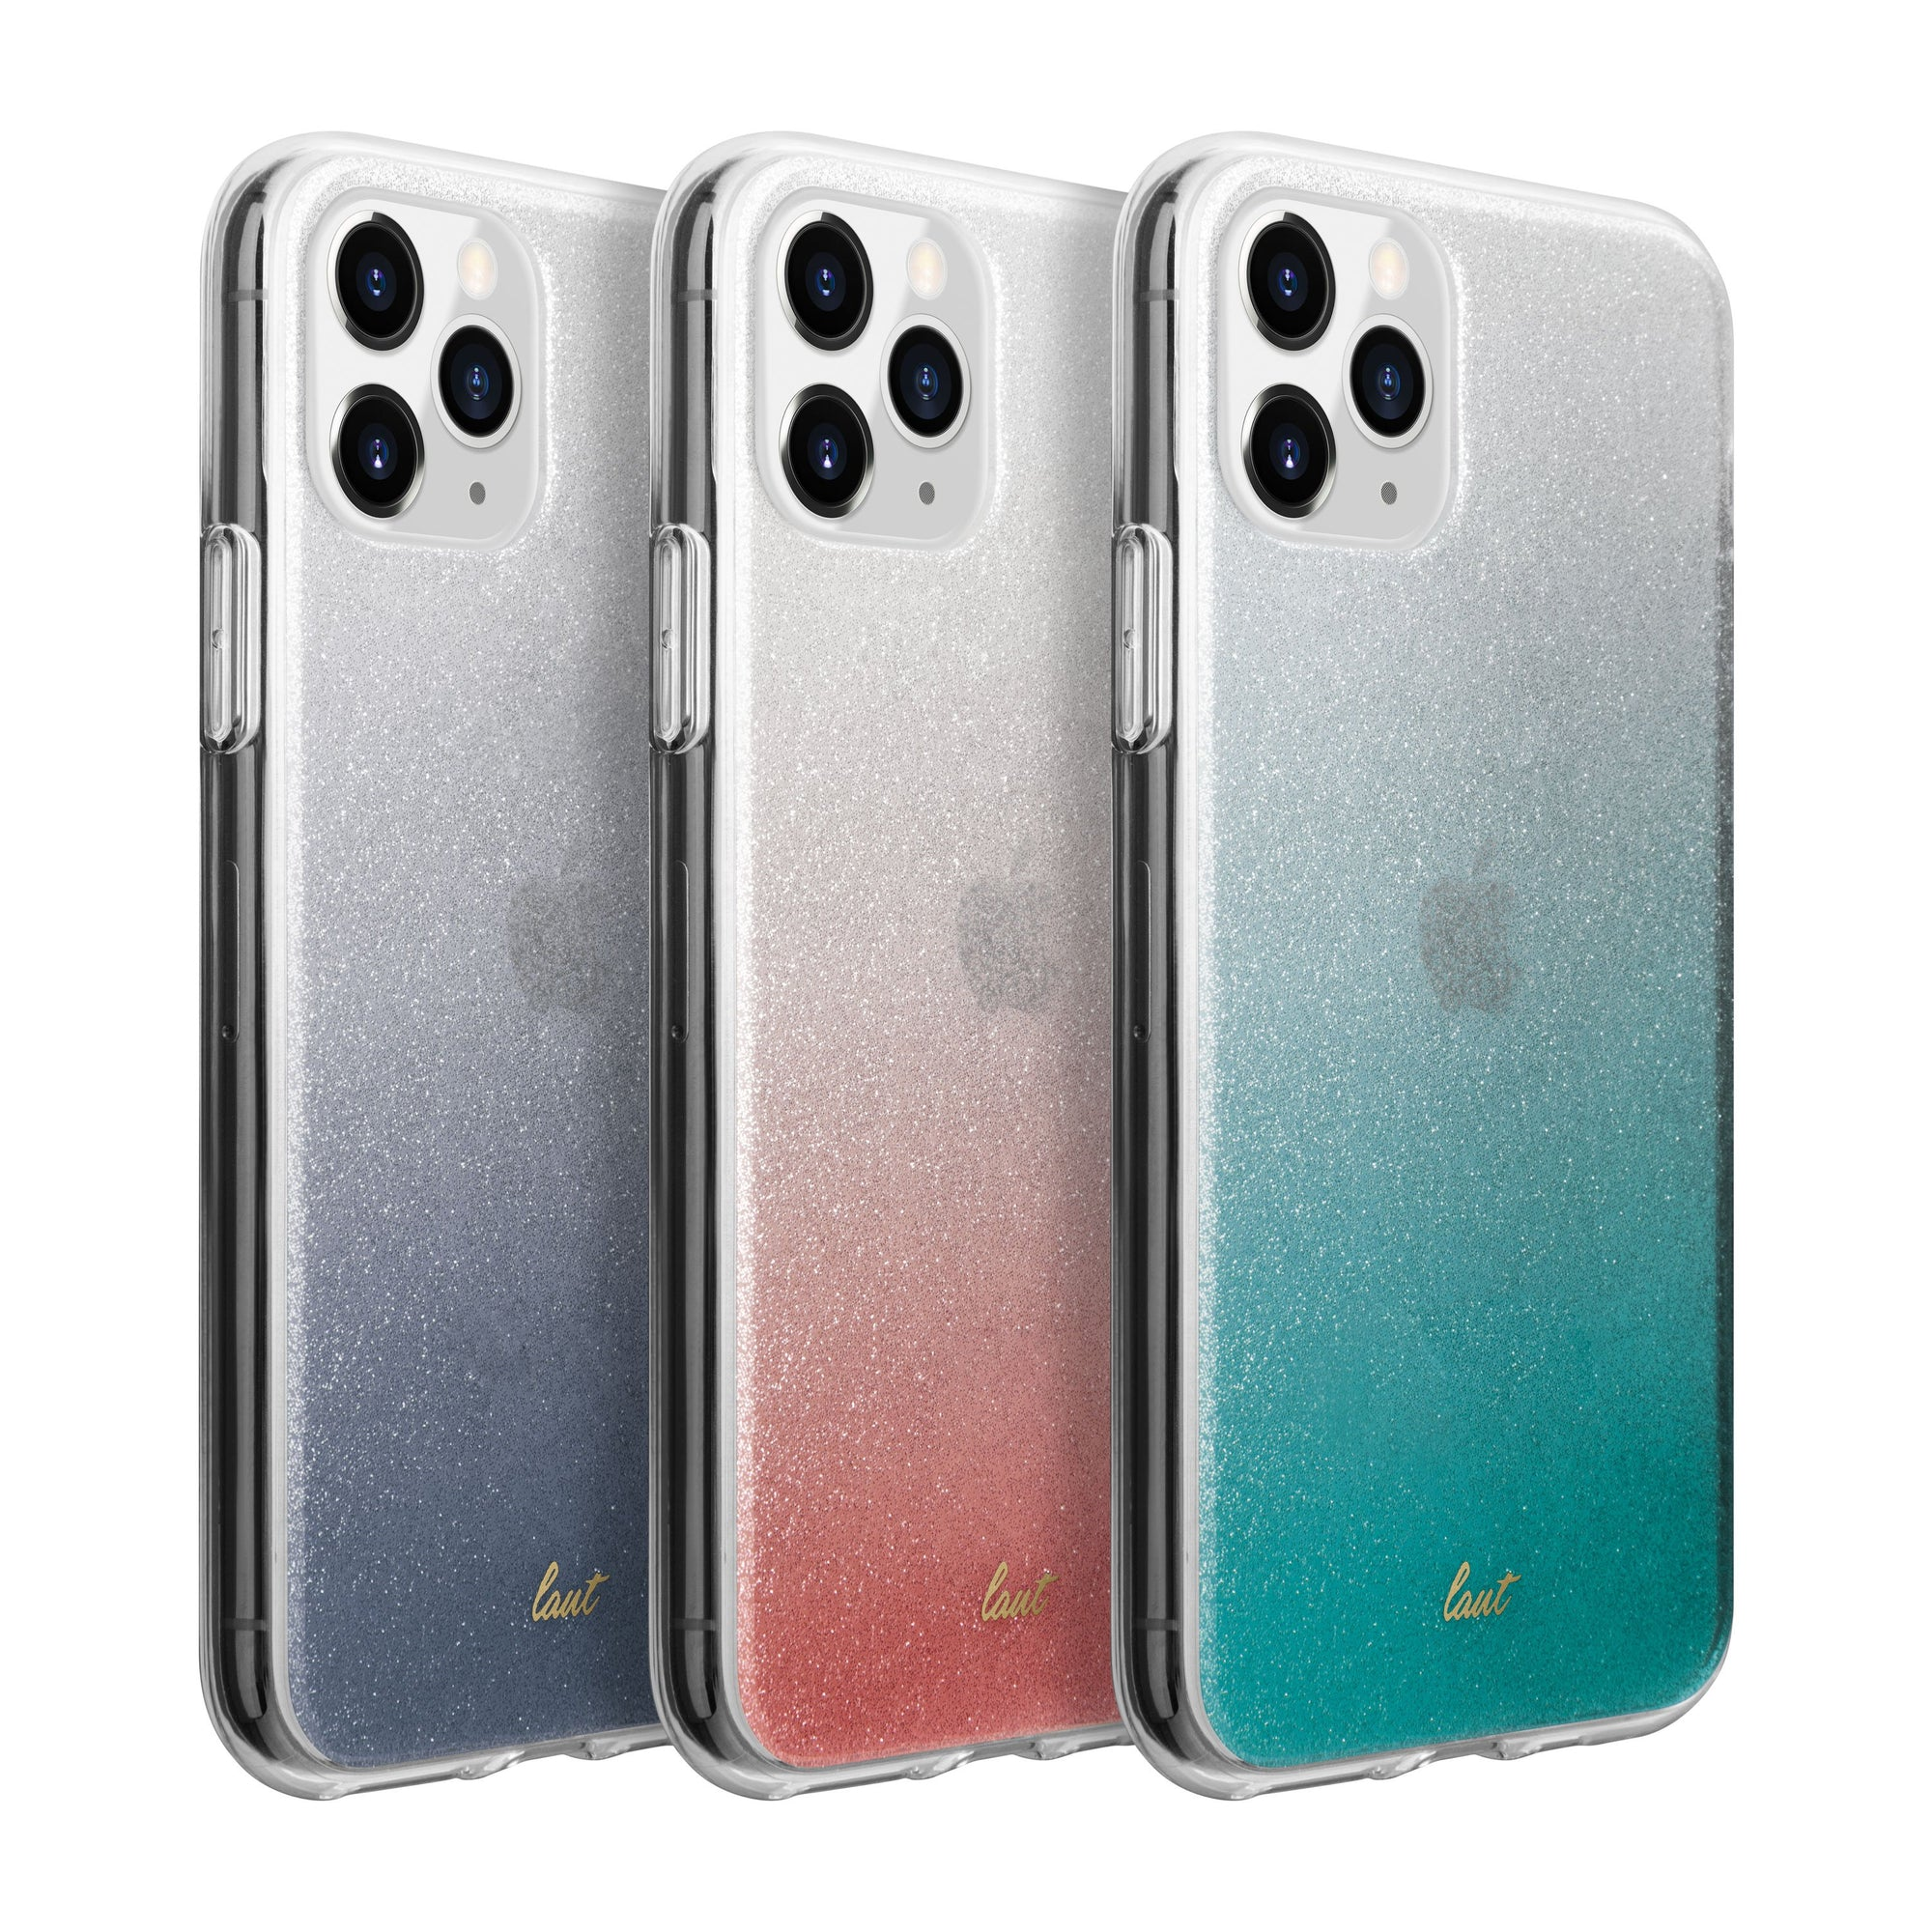 LAUT-OMBRE SPARKLE for iPhone 11 Series-Case-iPhone 11 / iPhone 11 Pro / iPhone 11 Pro Max